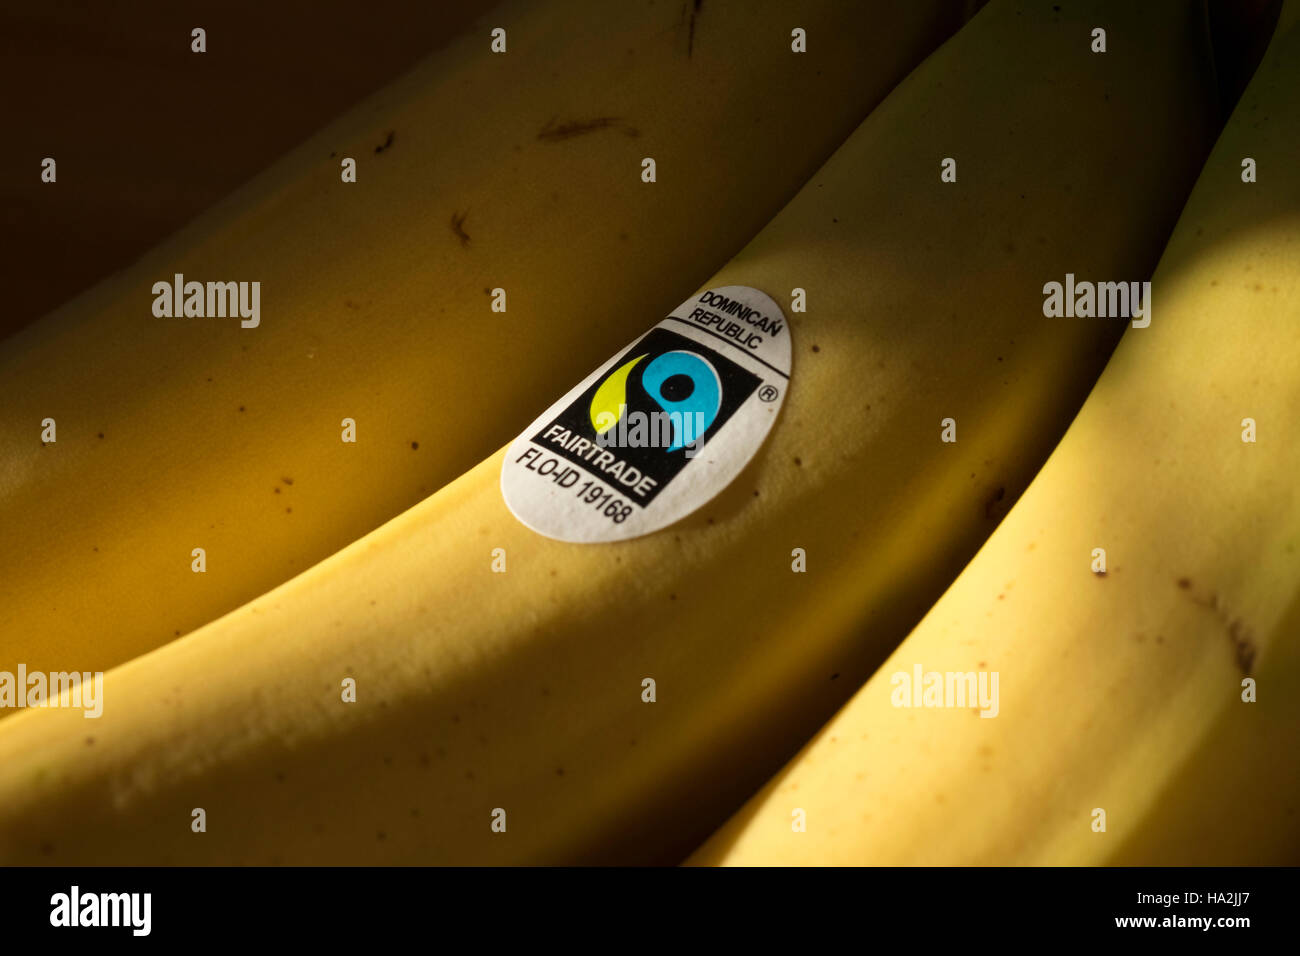 Bunch of Bananas with Fair Trade sticker - Stock Image